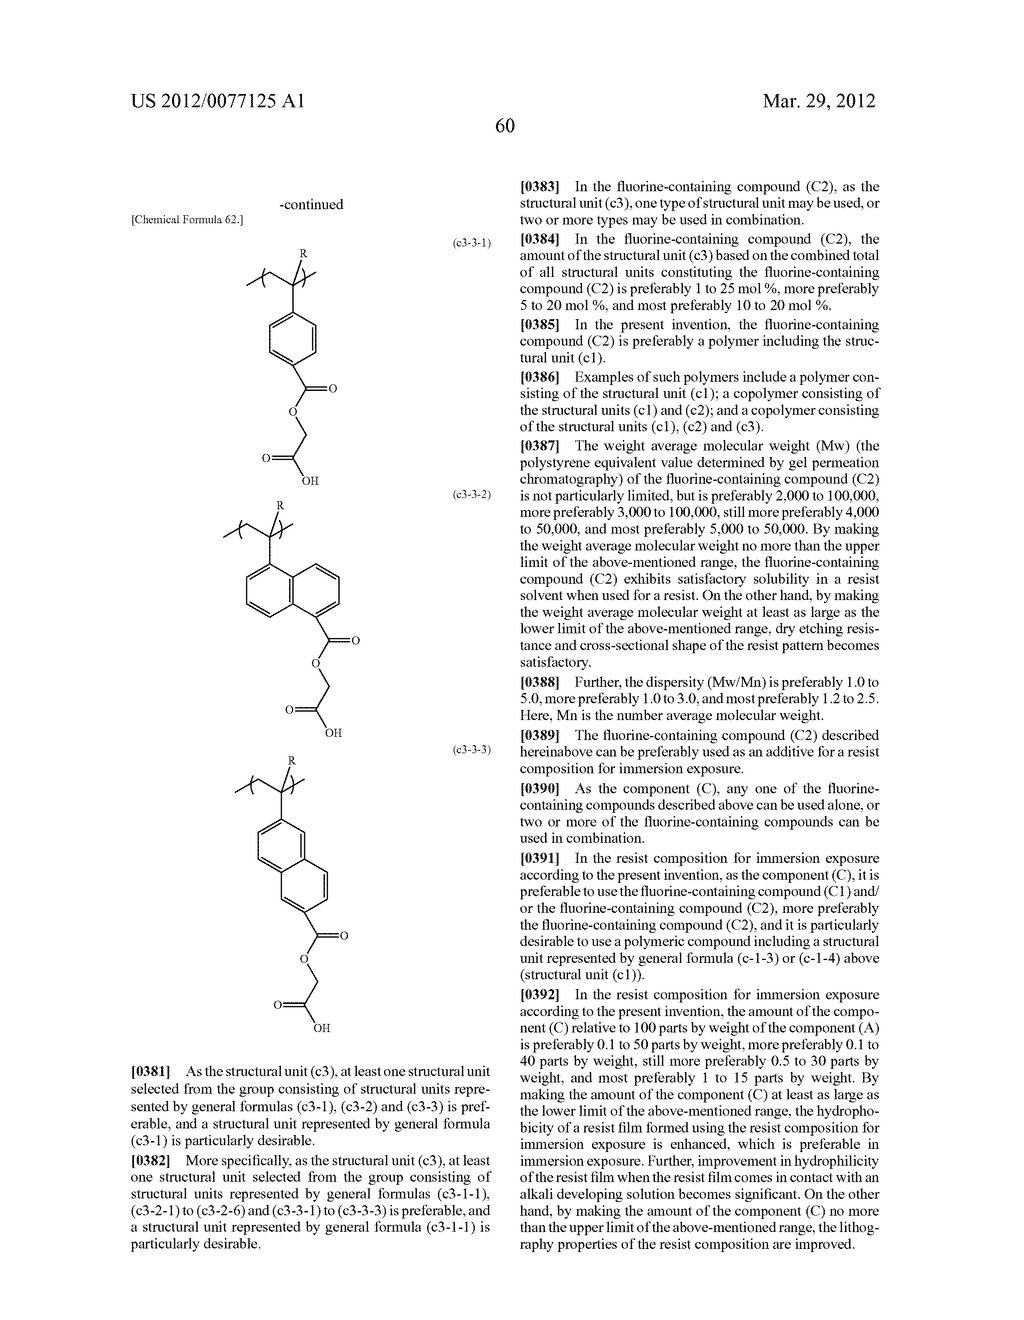 RESIST COMPOSITION FOR IMMERSION EXPOSURE, METHOD OF FORMING RESIST     PATTERN USING THE SAME, AND FLUORINE-CONTAINING COMPOUND - diagram, schematic, and image 62